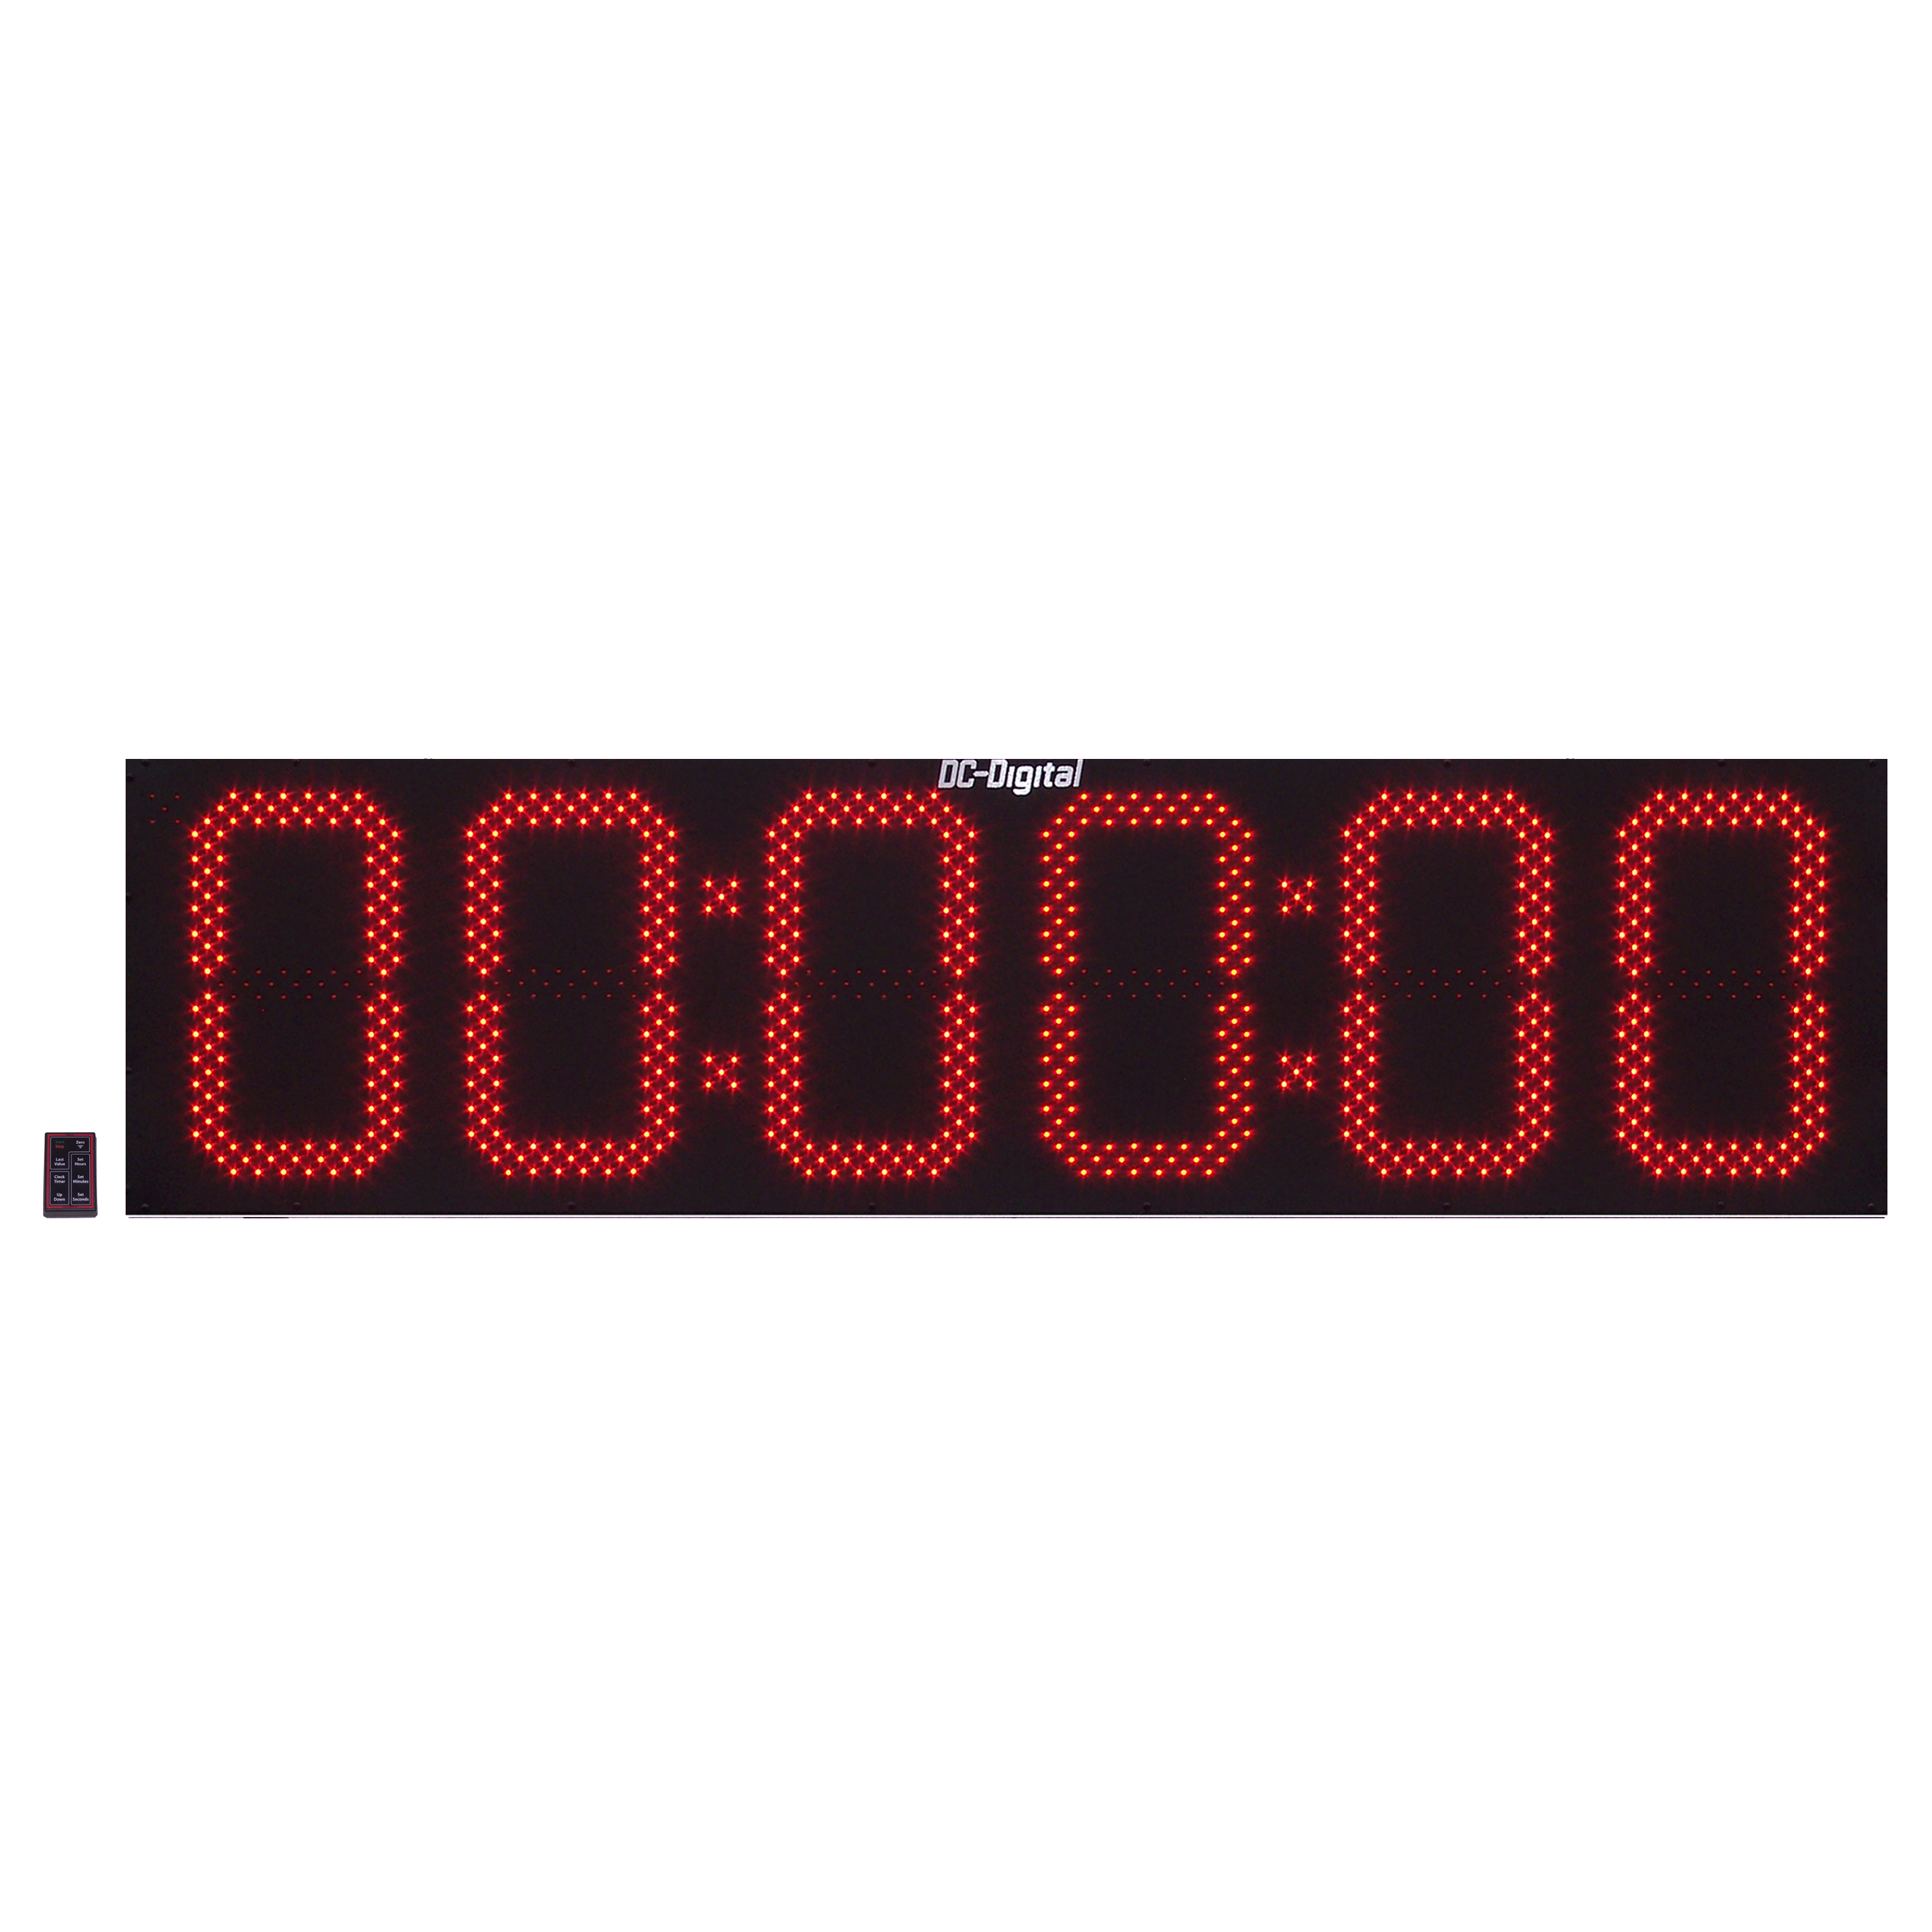 (DC-156UTW-SPORT) Multi-Function, RF-Wireless Remote Controlled, Digital Sports Timer-Clock, 15 Inch Digits, Hours, Minutes, Seconds (OUTDOOR)